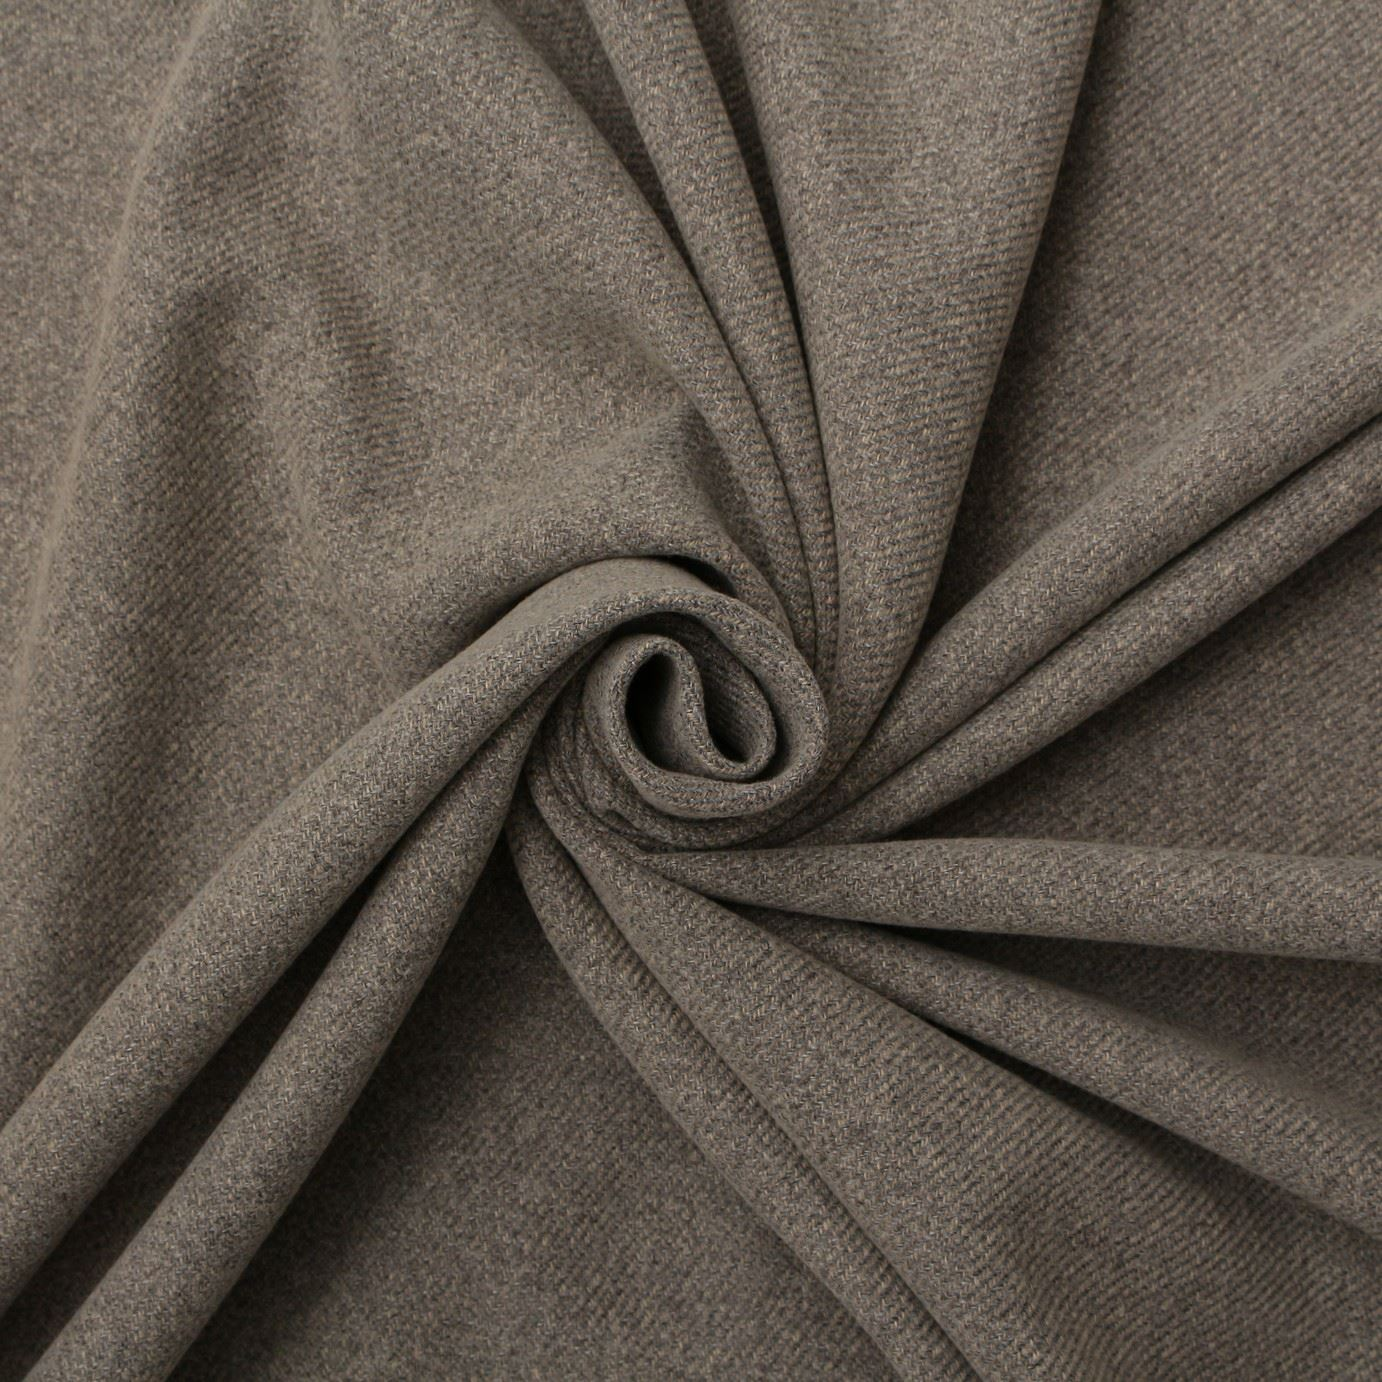 thumbnail 21 - TRADITIONAL TWILL WEAVE SOFT PLAIN FURNISHING COTTON FAUX WOOL UPHOLSTERY FABRIC